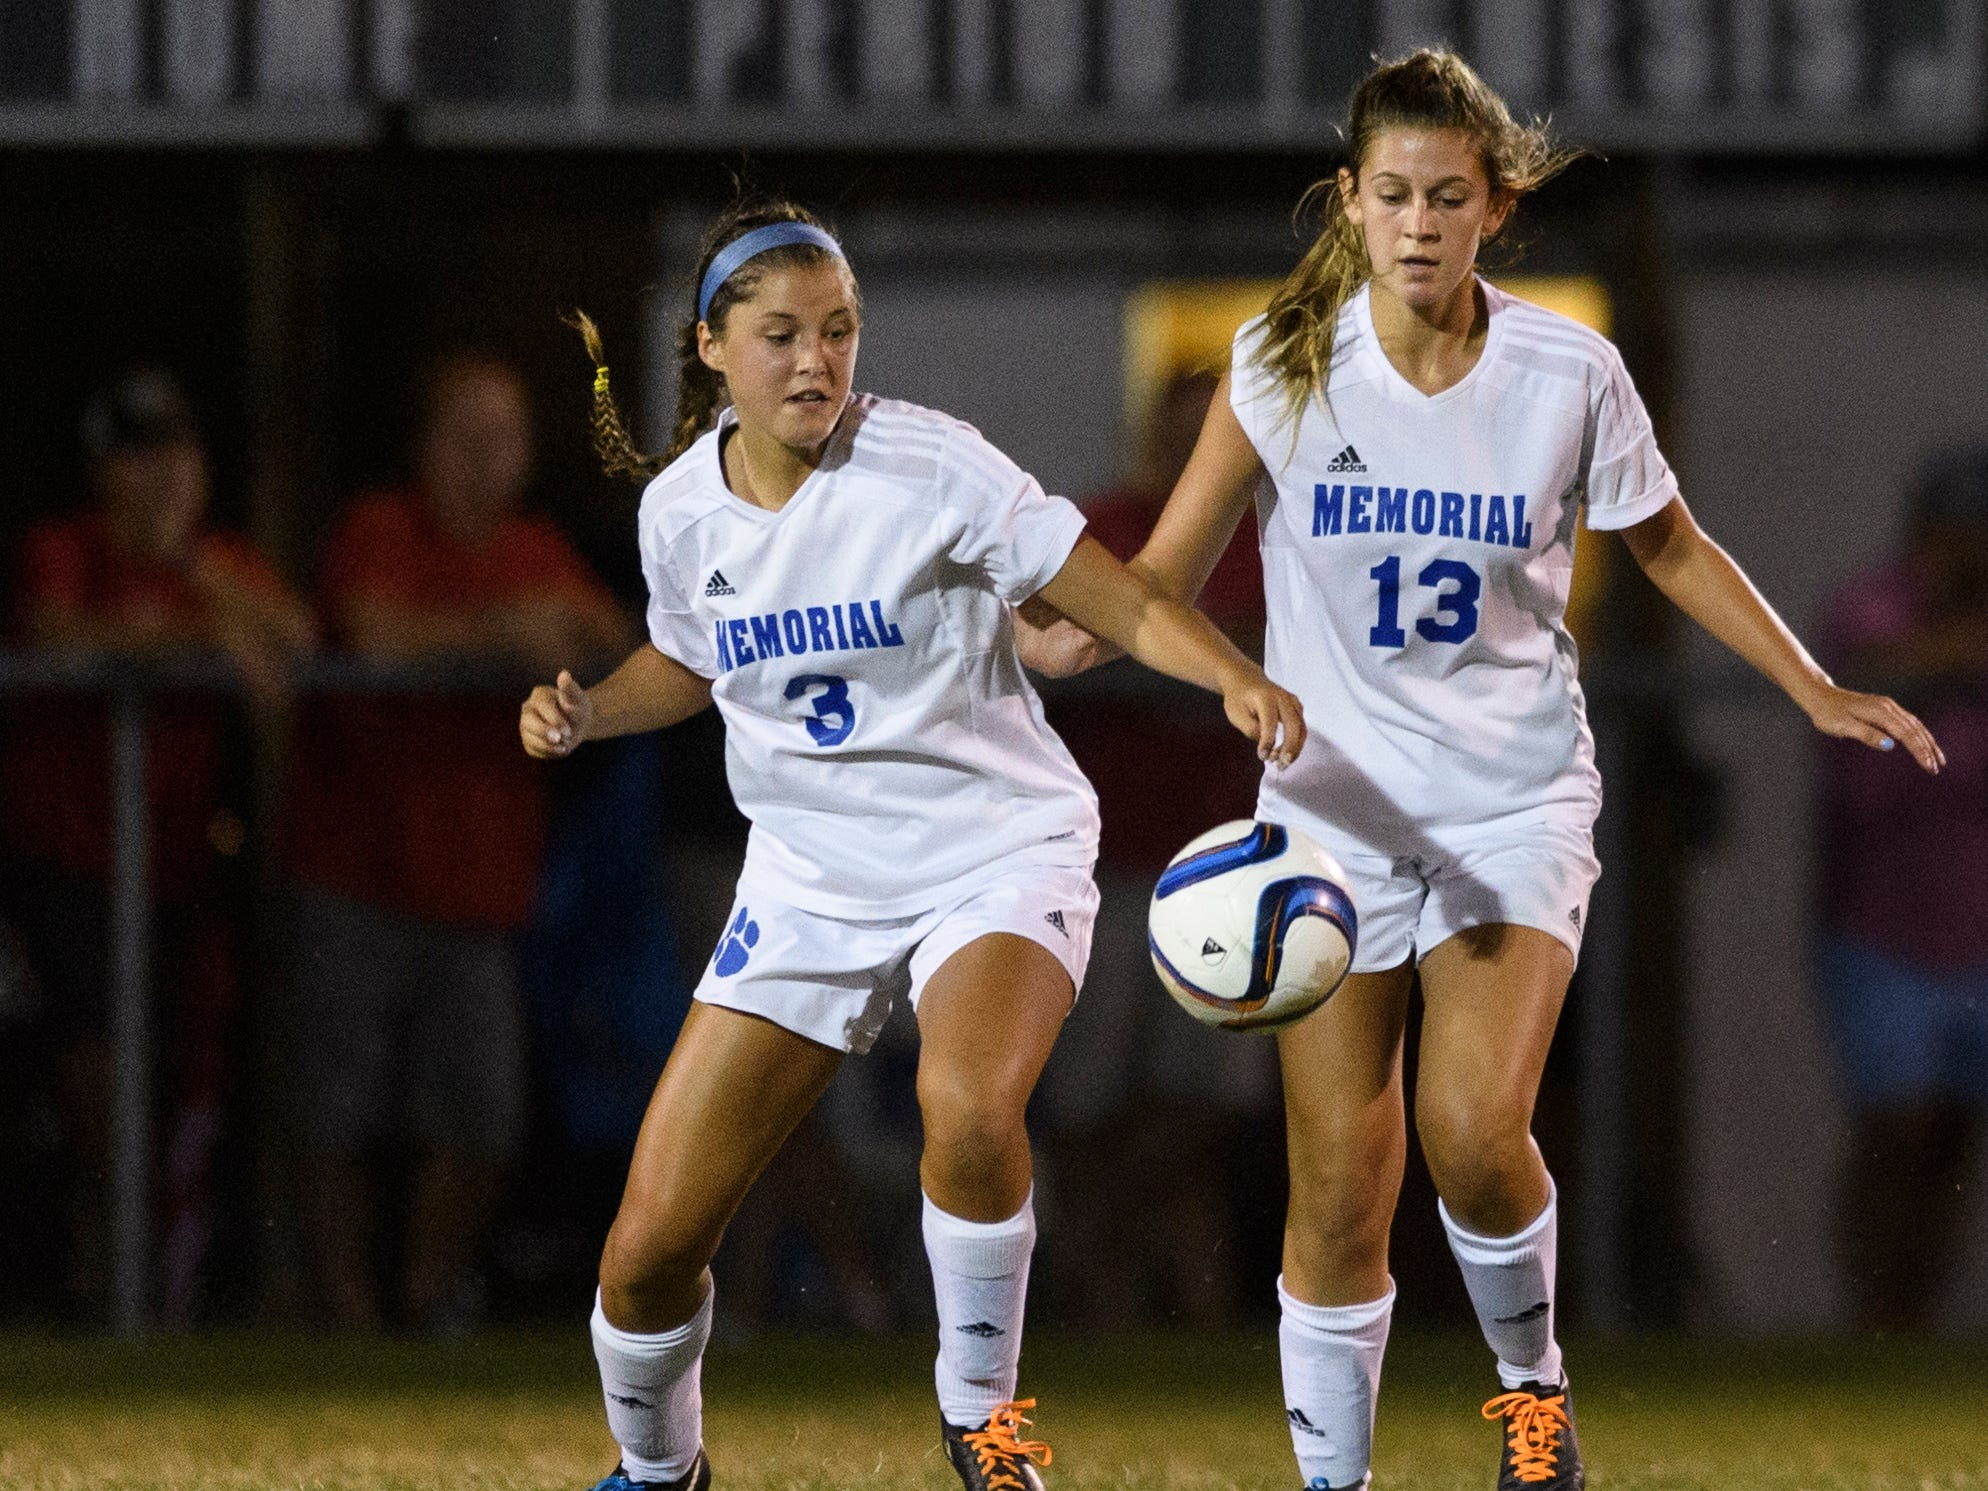 Memorial's Sydney Ulrich (3) and Memorial's Eve Timmons (13) take on the Mater Dei Wildcats at the EVSC Soccer Fields in Evansville, Ind., Monday, Aug. 20, 2018. The Tigers defeated the Wildcats 4-0.